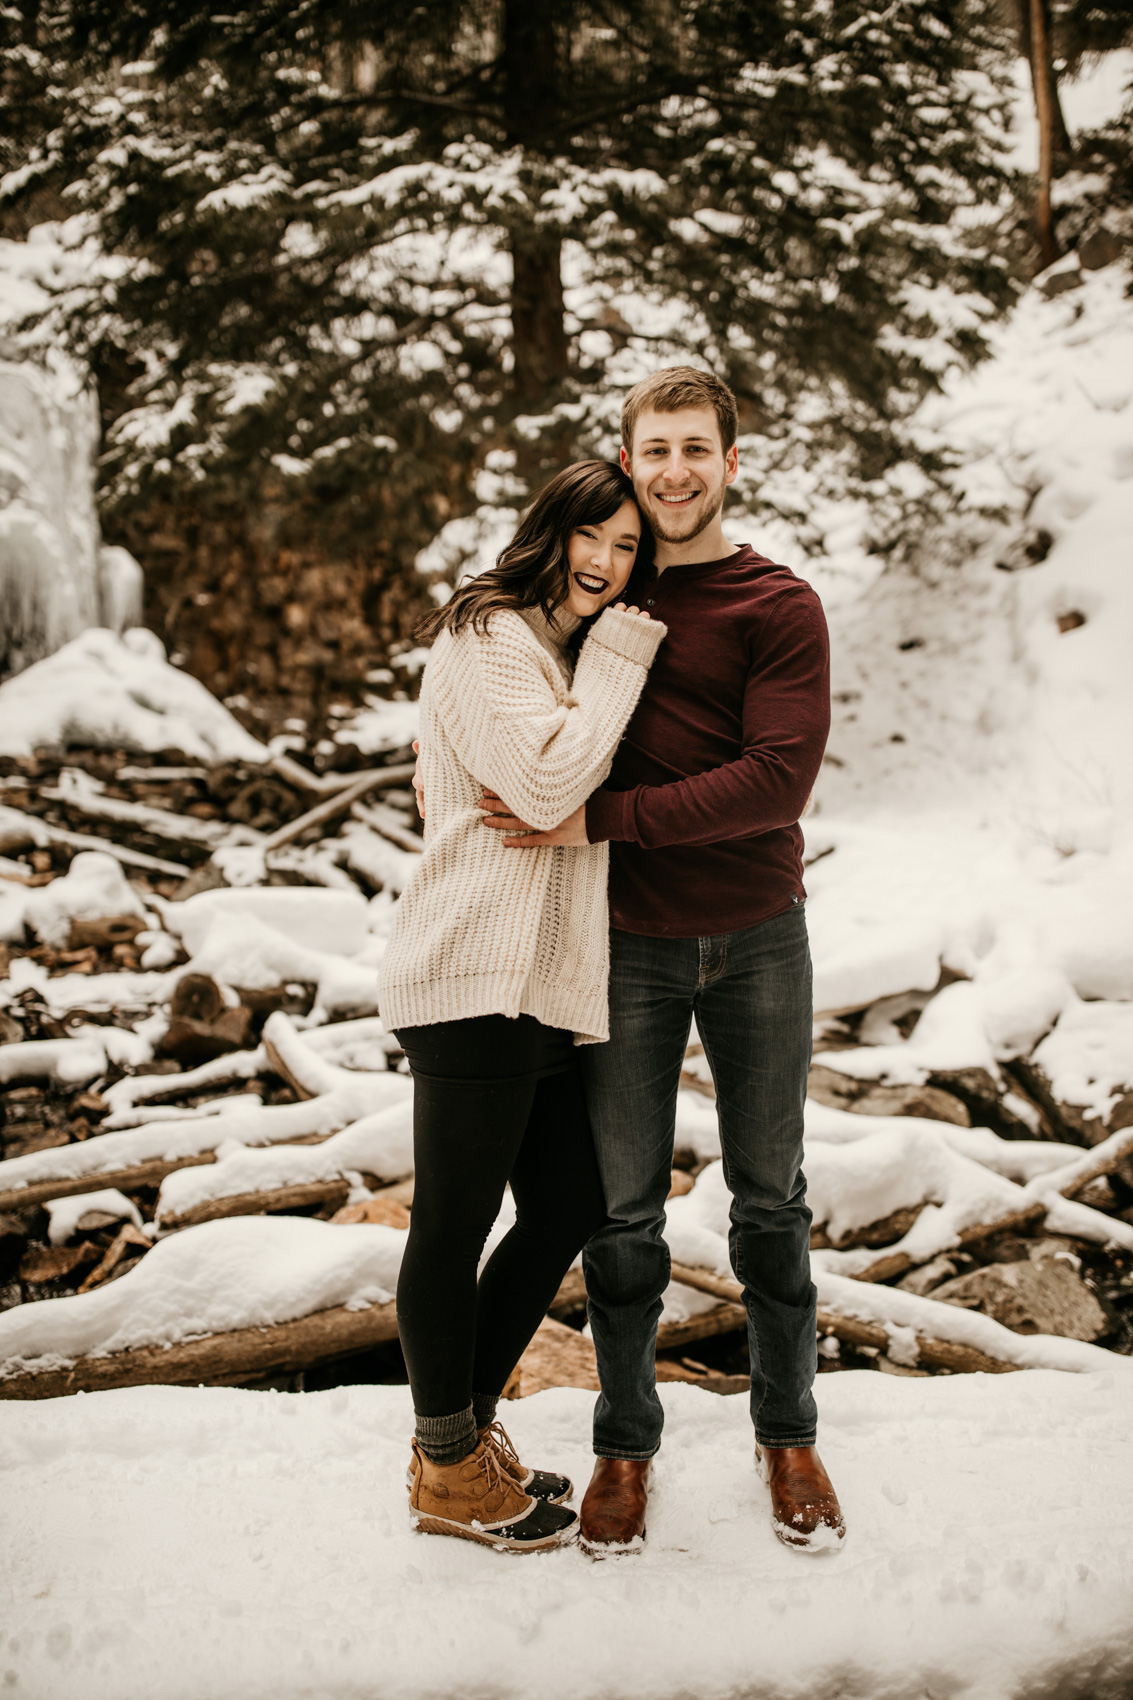 Molly-Trenton_Montana-Waterfall-Engagment-Session-15.jpg